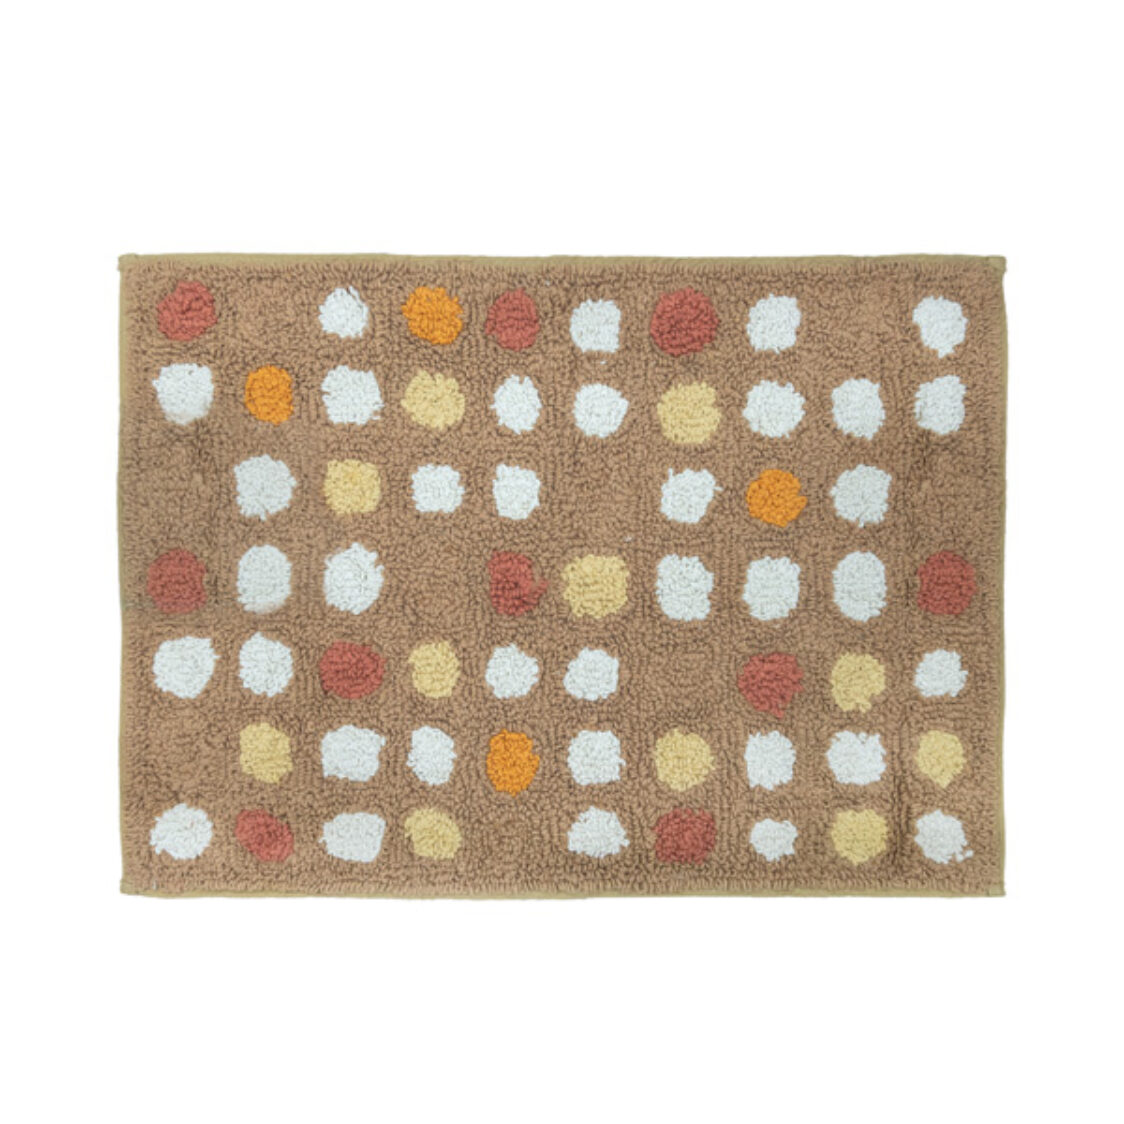 Suite Collection Polka Dot S - Brown